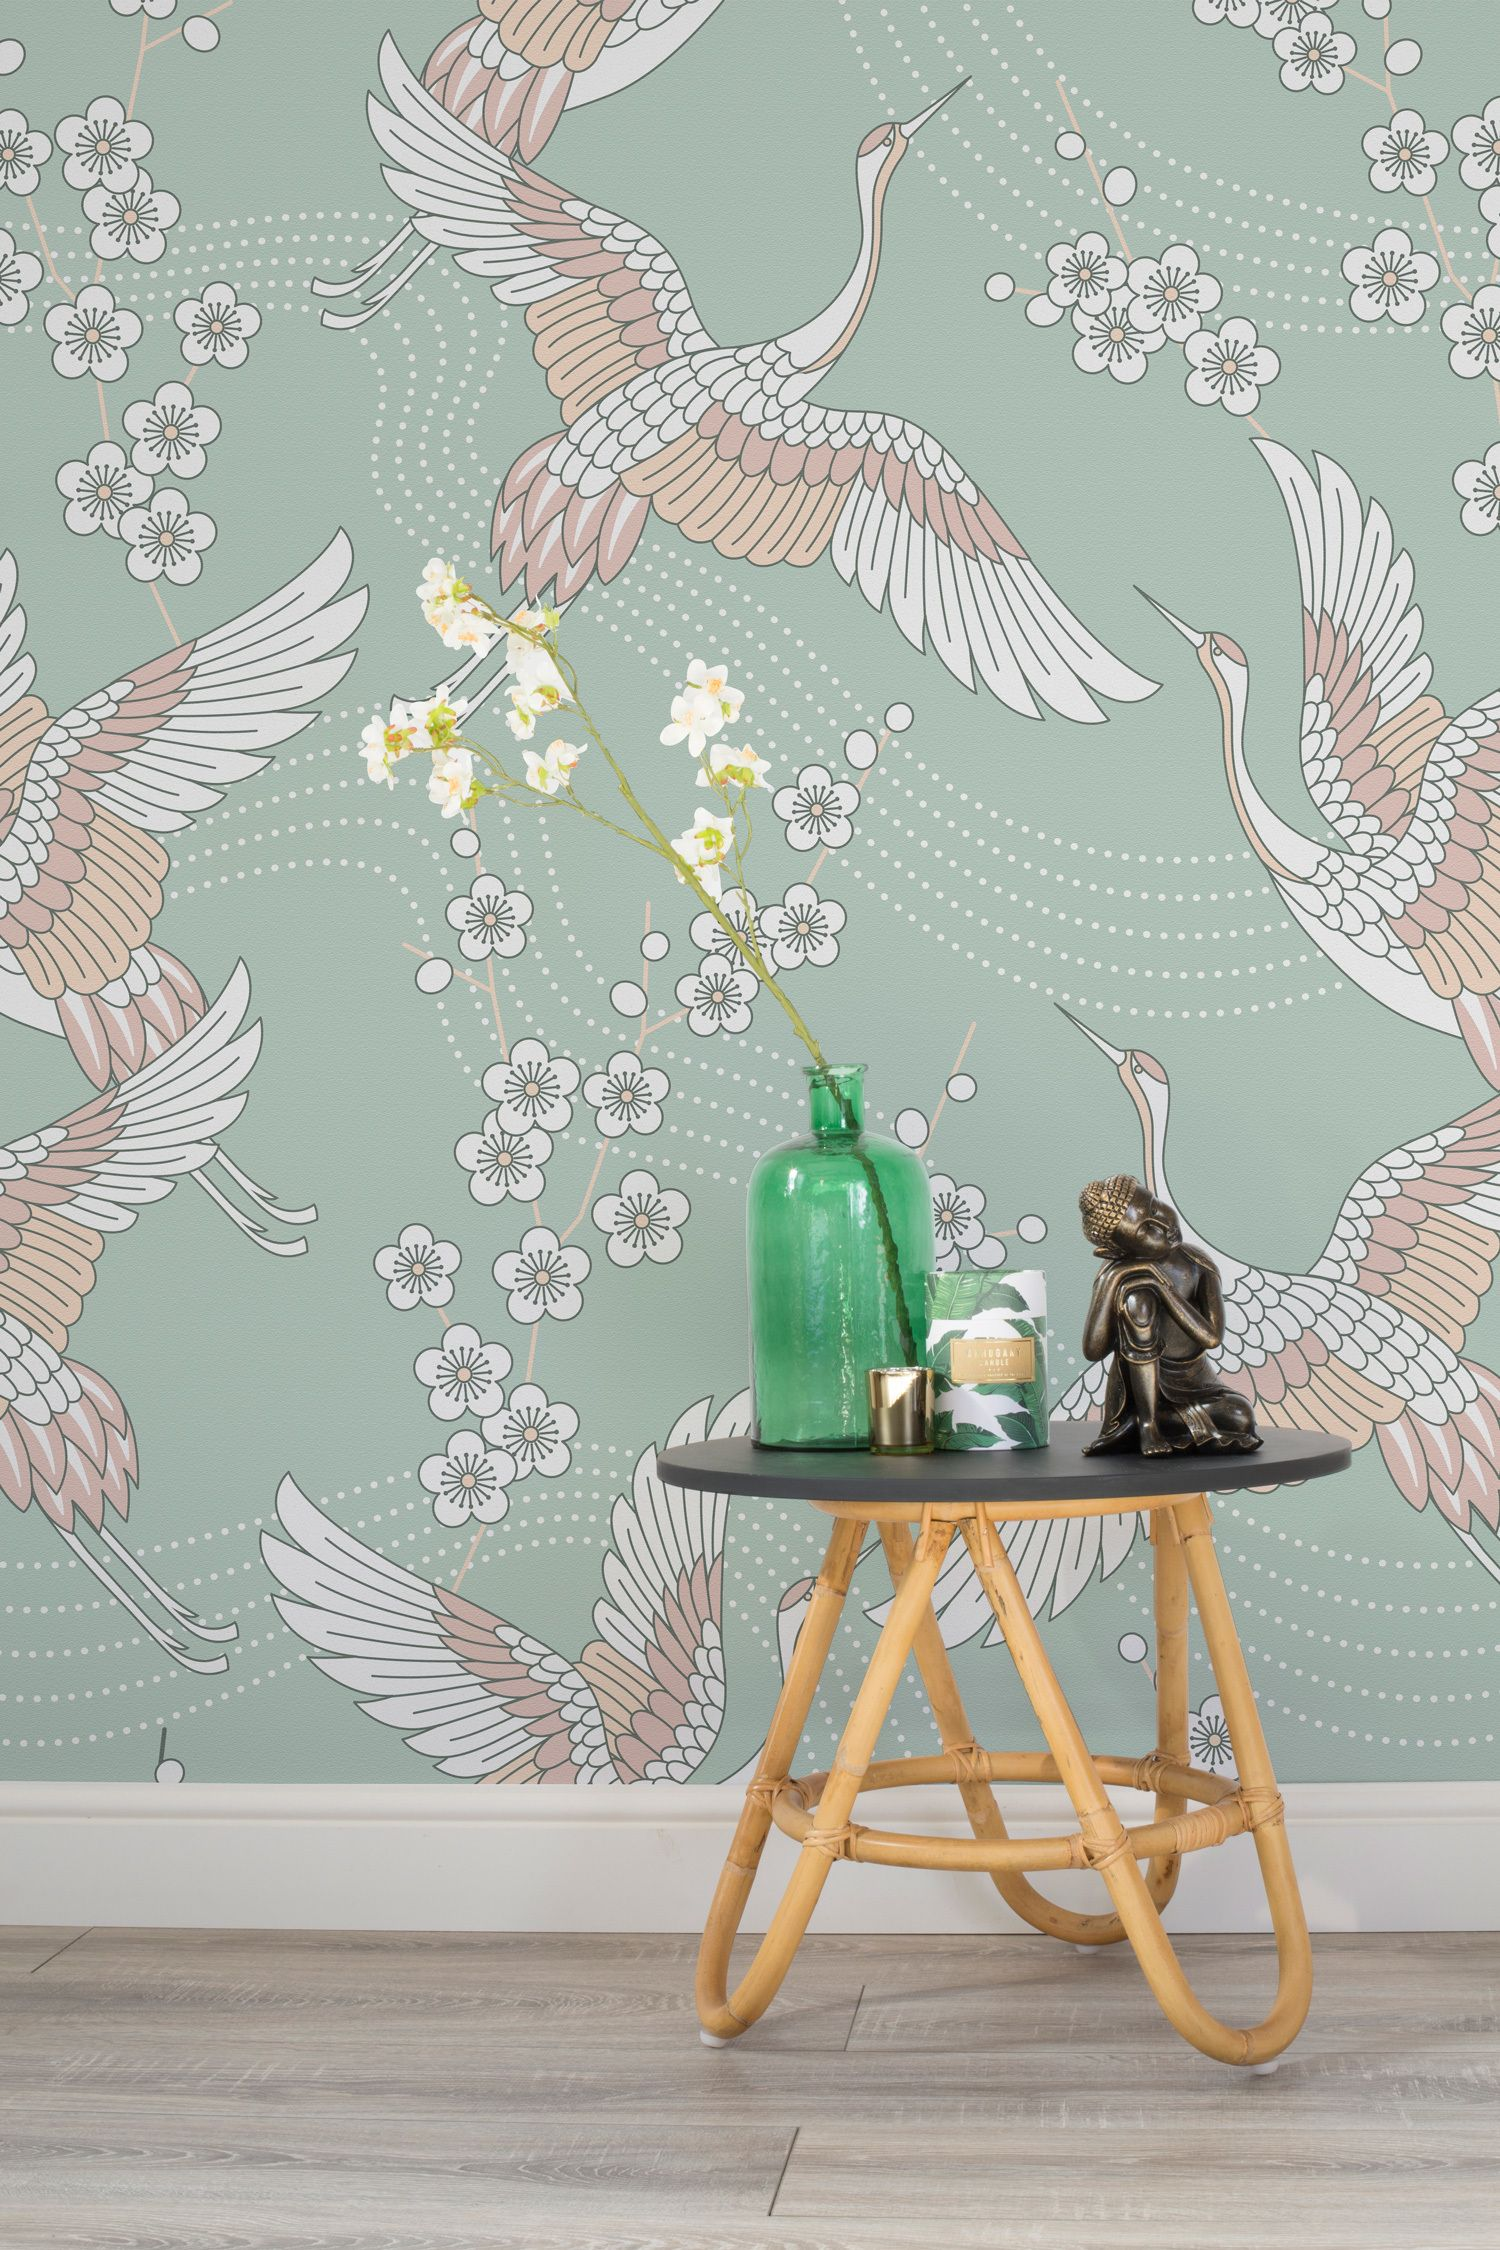 Zen style with uplifting pastel colours. This oriental